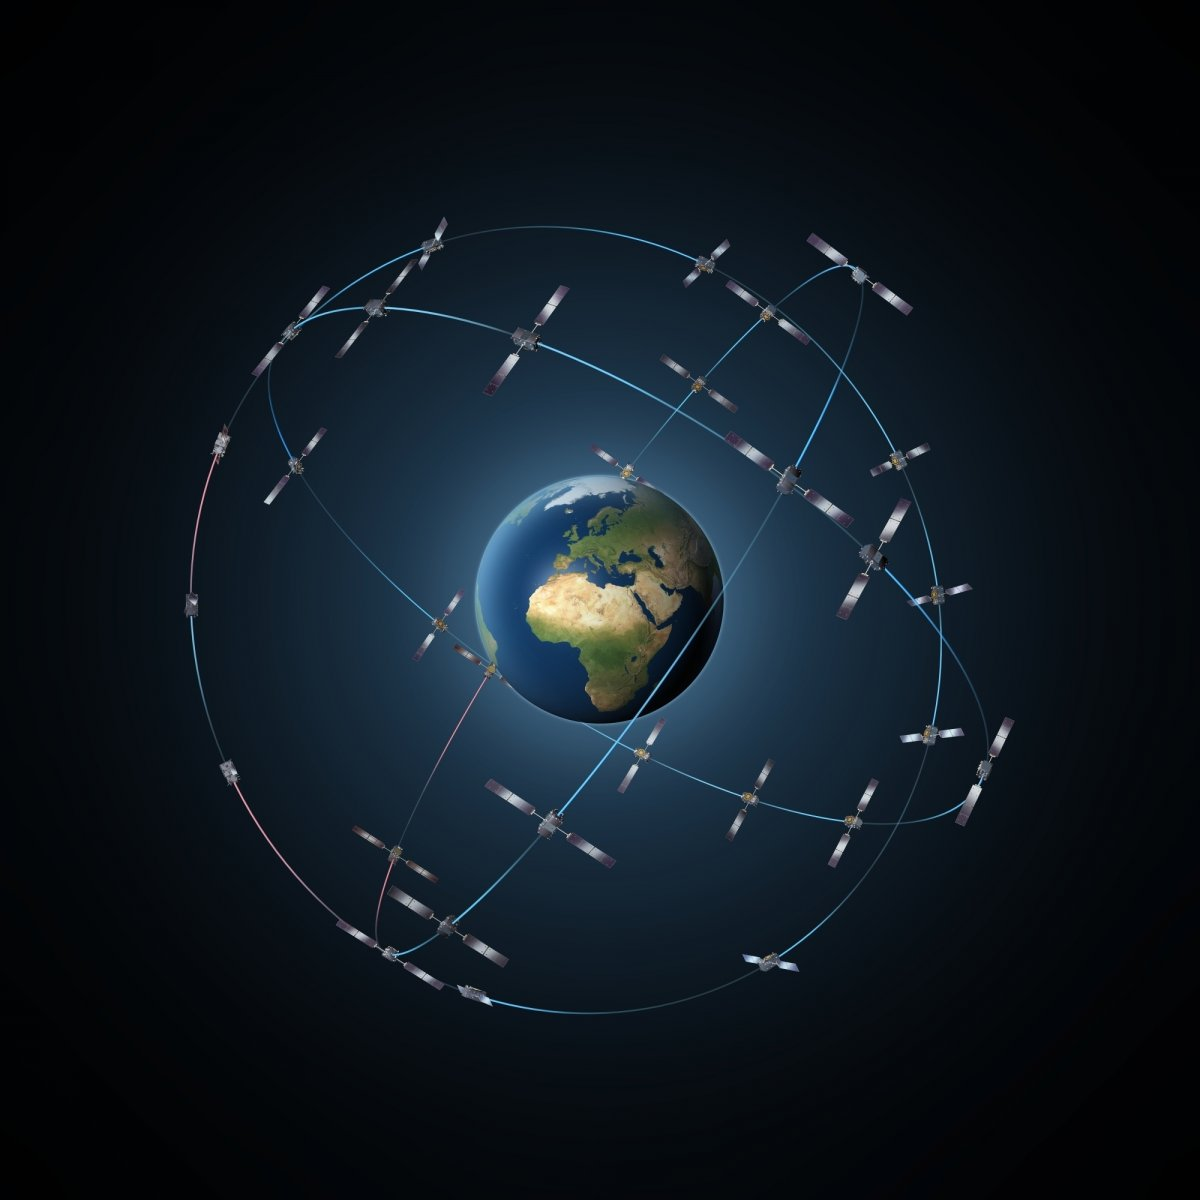 Satellitennavigation: Software-Update trug Mitschuld an Galileo-Ausfall